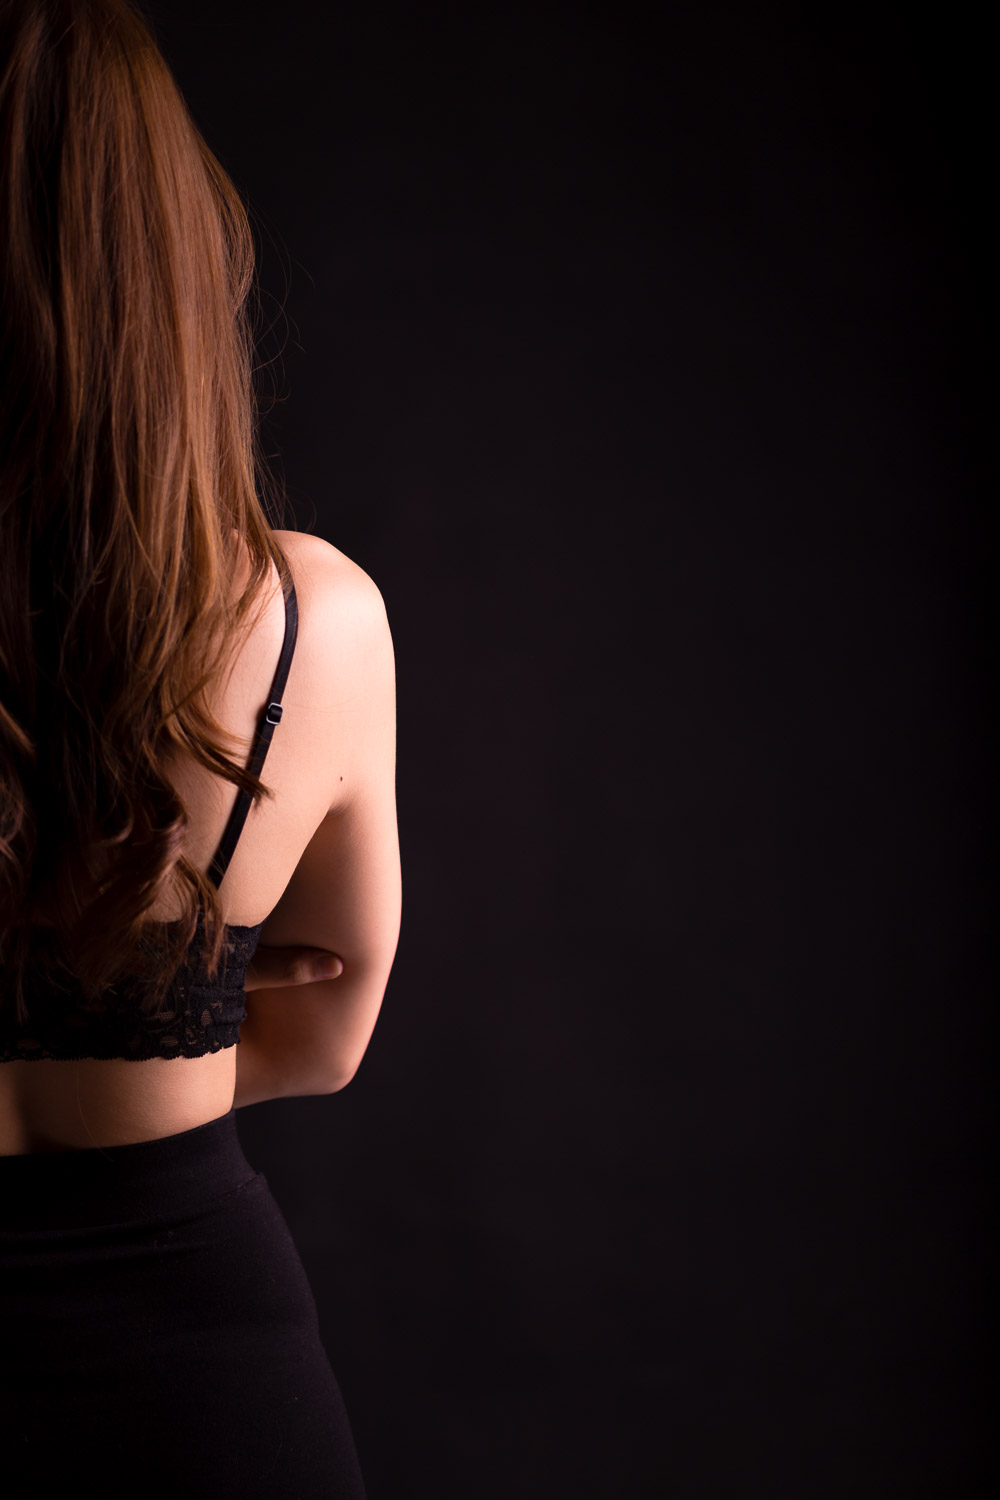 Half of woman from back